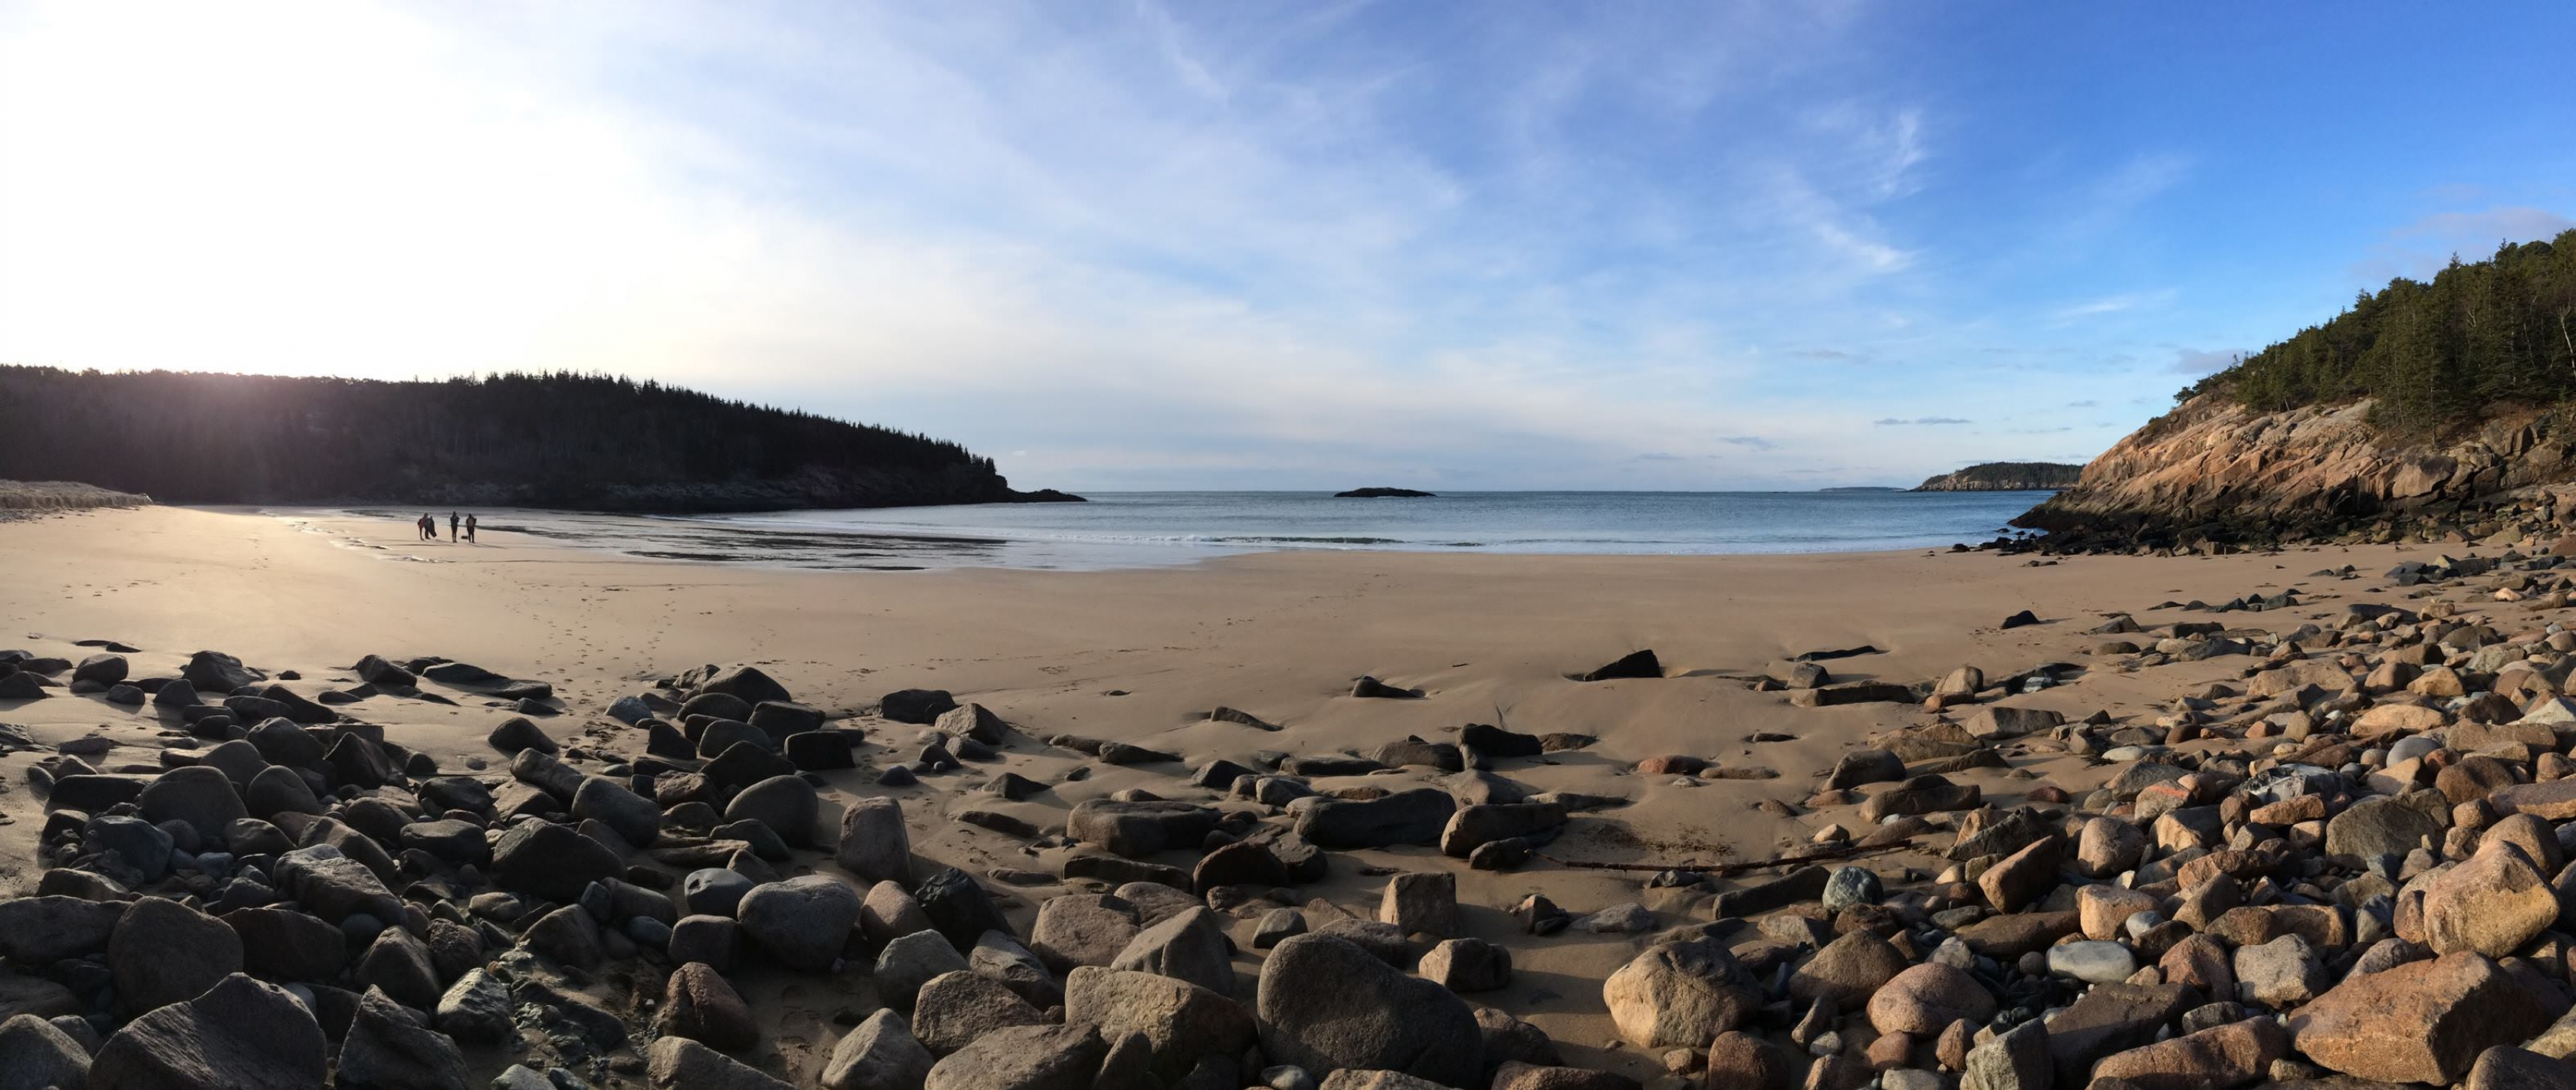 A beach in Acadia National Park in Maine.